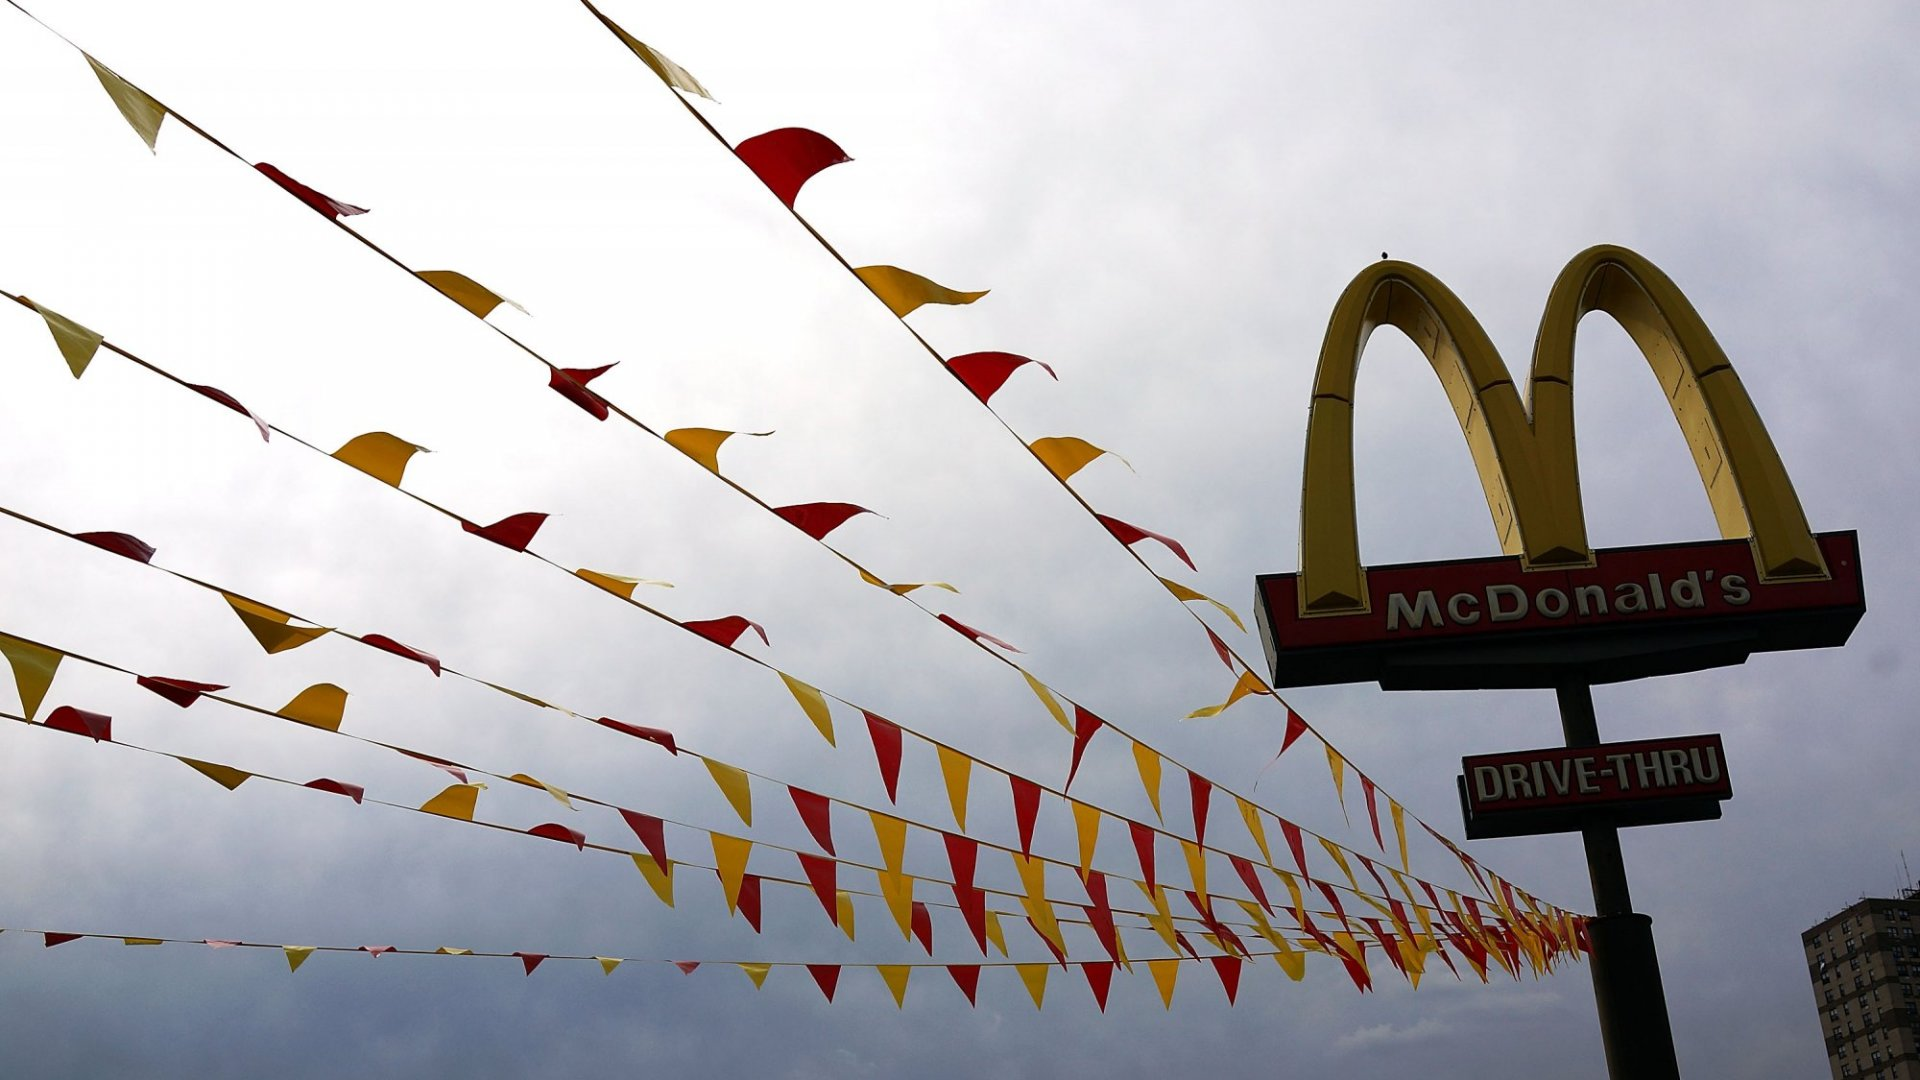 McDonald's, Other Fast-Food Workers, Protest Ahead of Annual Meeting